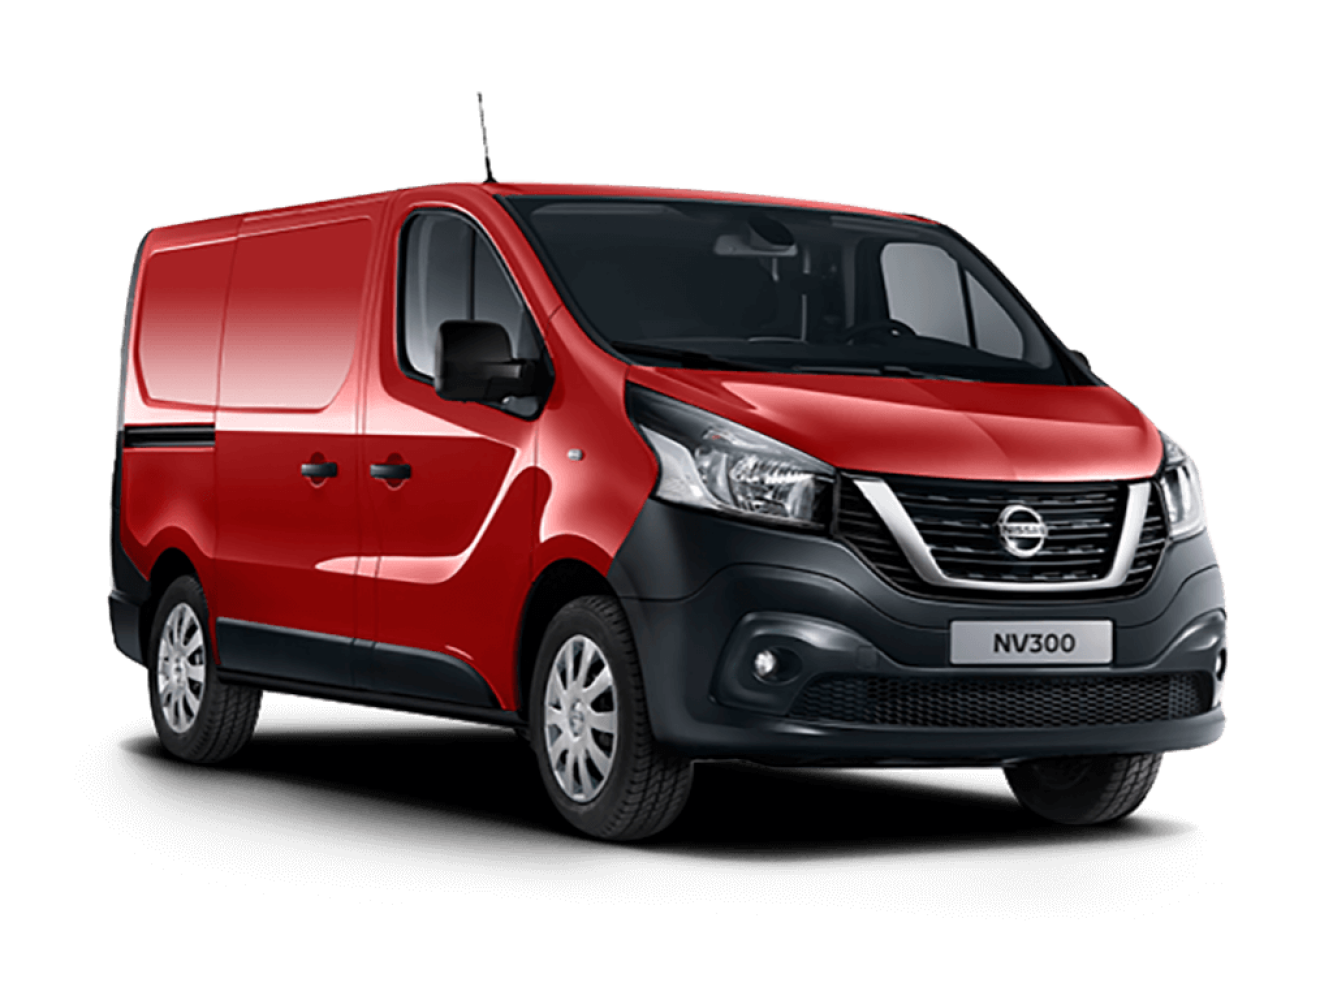 new nissan nv300 2 7t l1 diesel 1 6 dci 145ps h1 acenta van for sale macklin motors. Black Bedroom Furniture Sets. Home Design Ideas